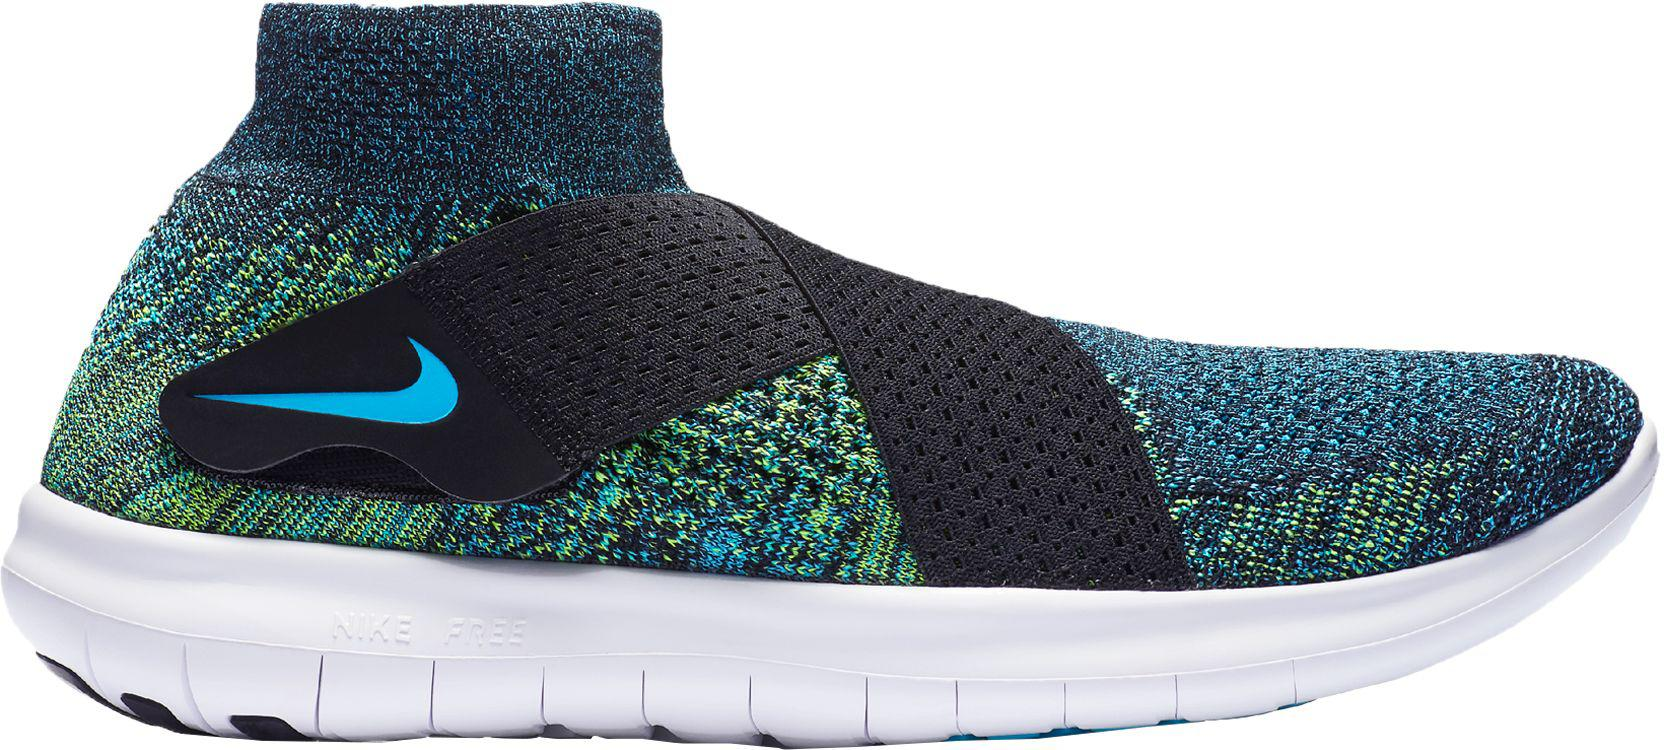 41f35ff03530 Lyst - Nike Free Rn Motion Flyknit 2 Running Shoes in Blue for Men